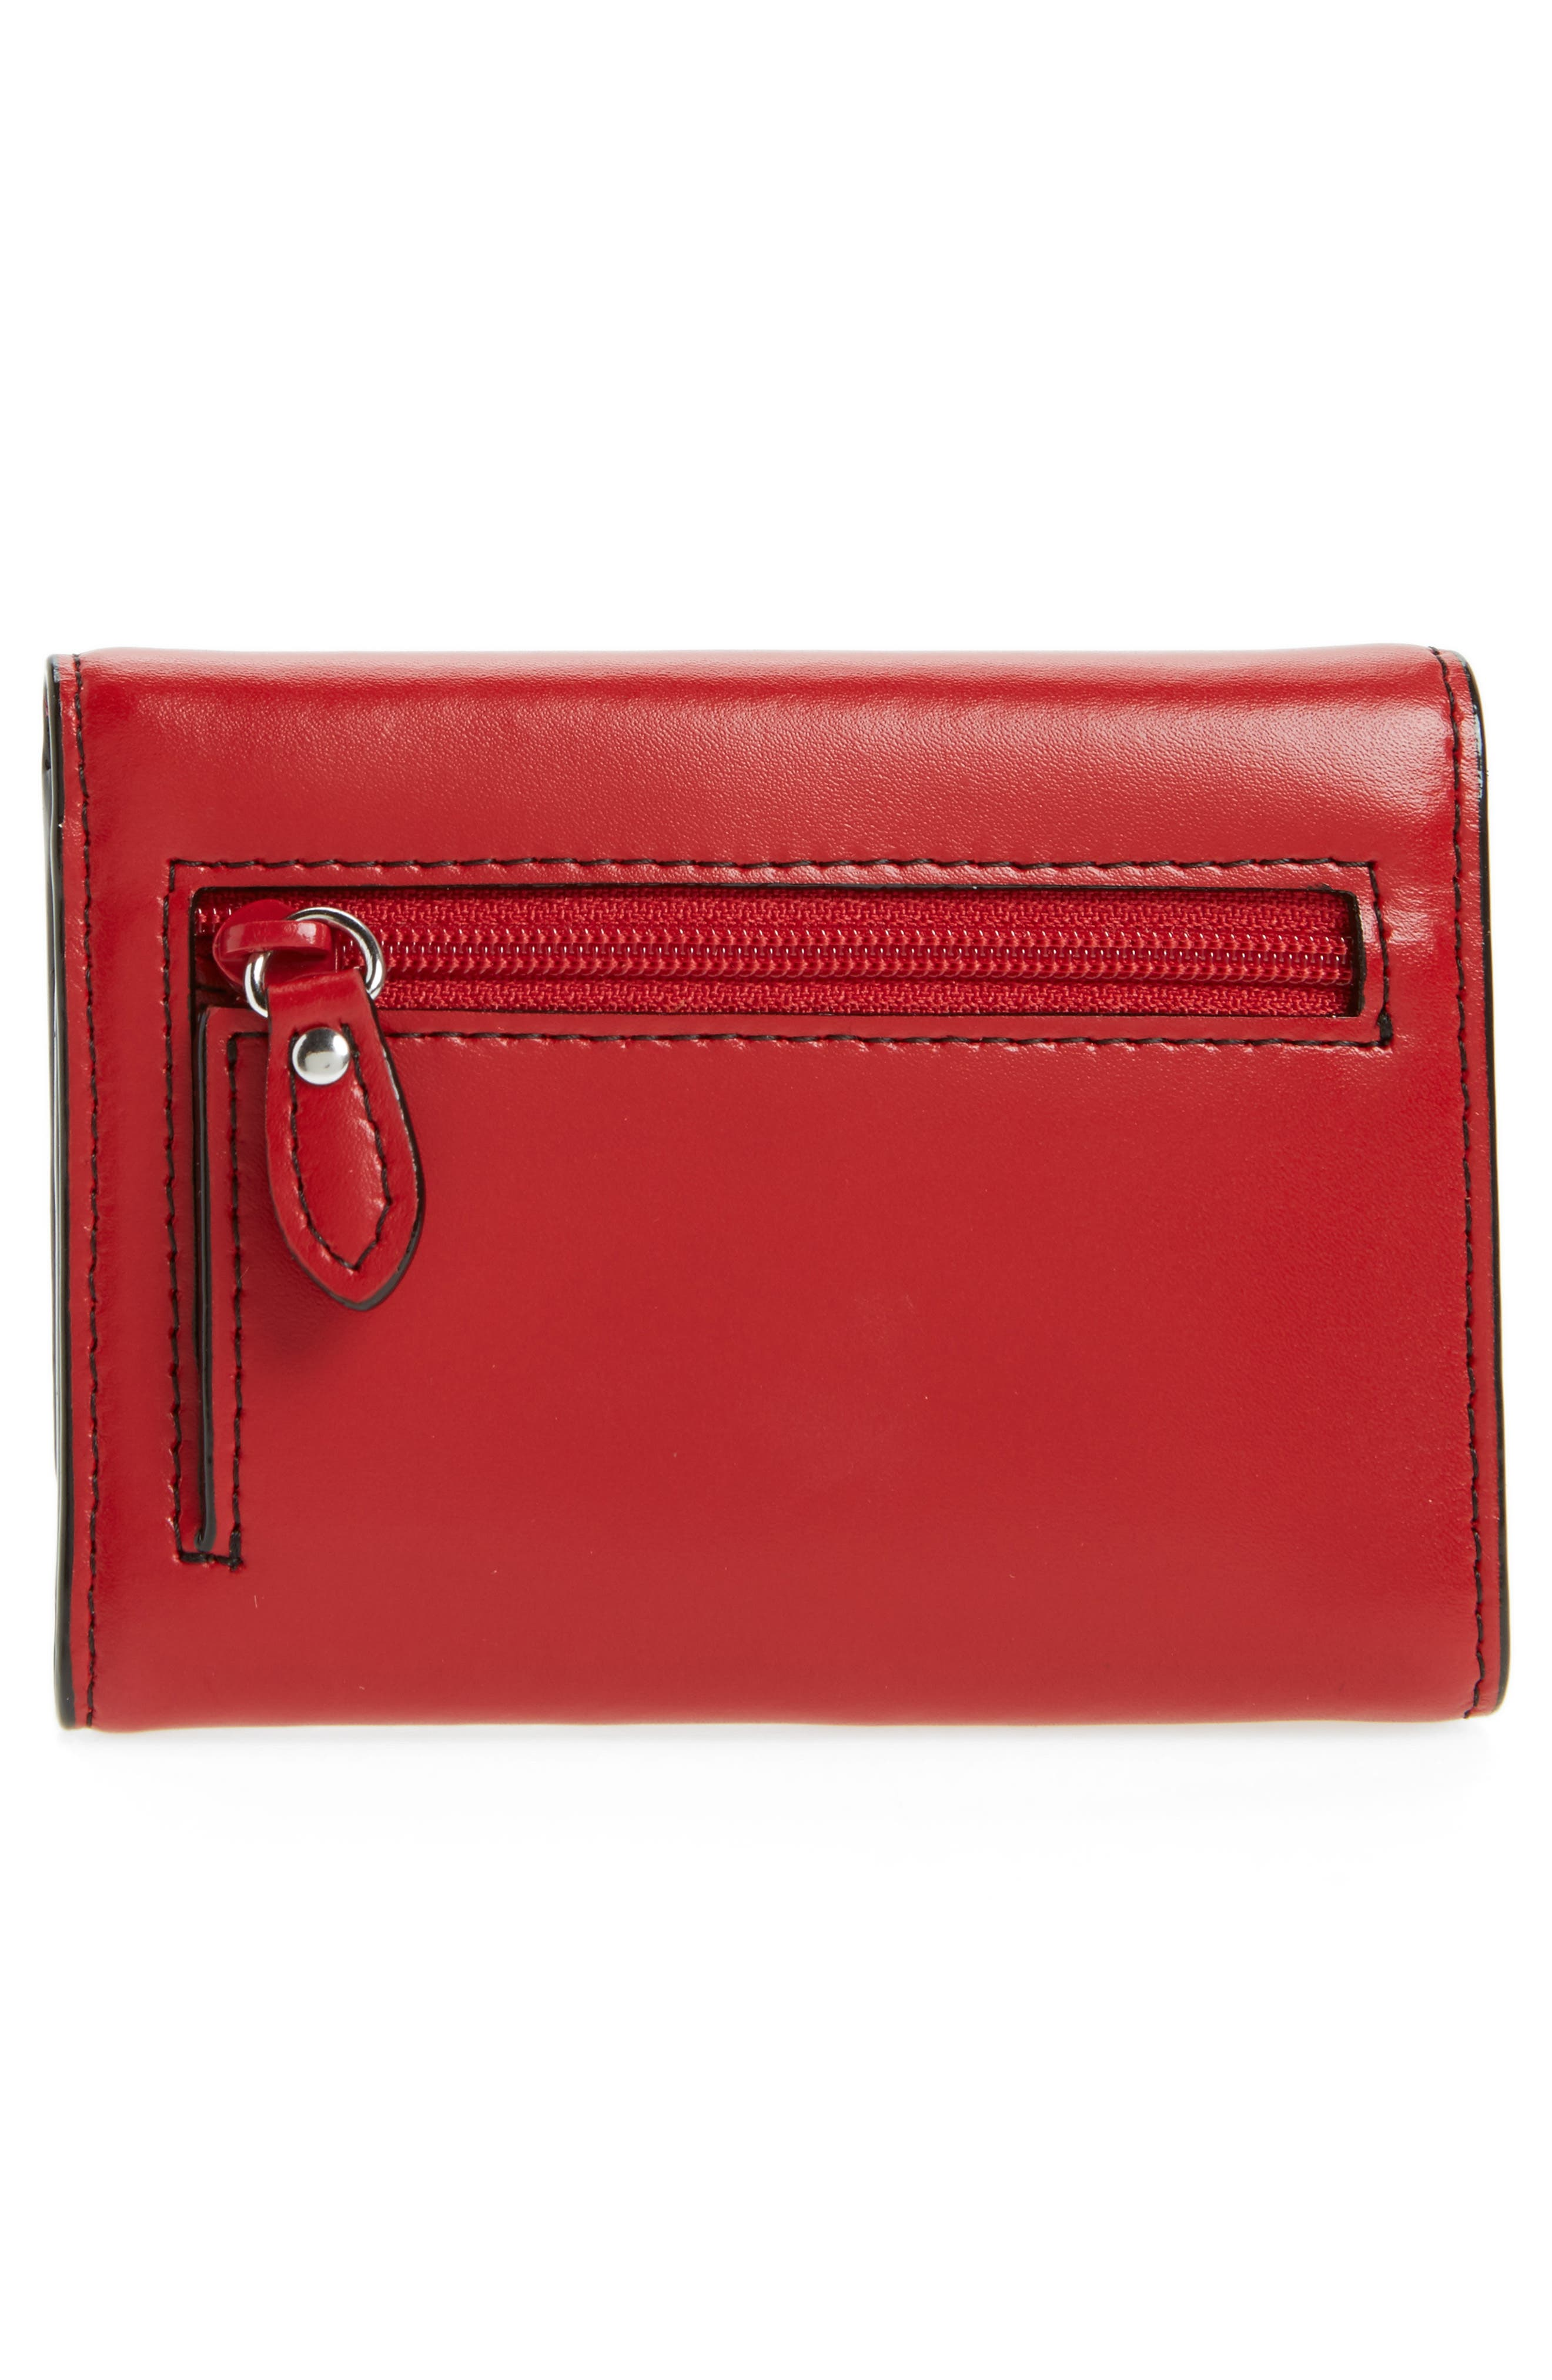 Mallory RFID Leather Wallet,                             Alternate thumbnail 4, color,                             600